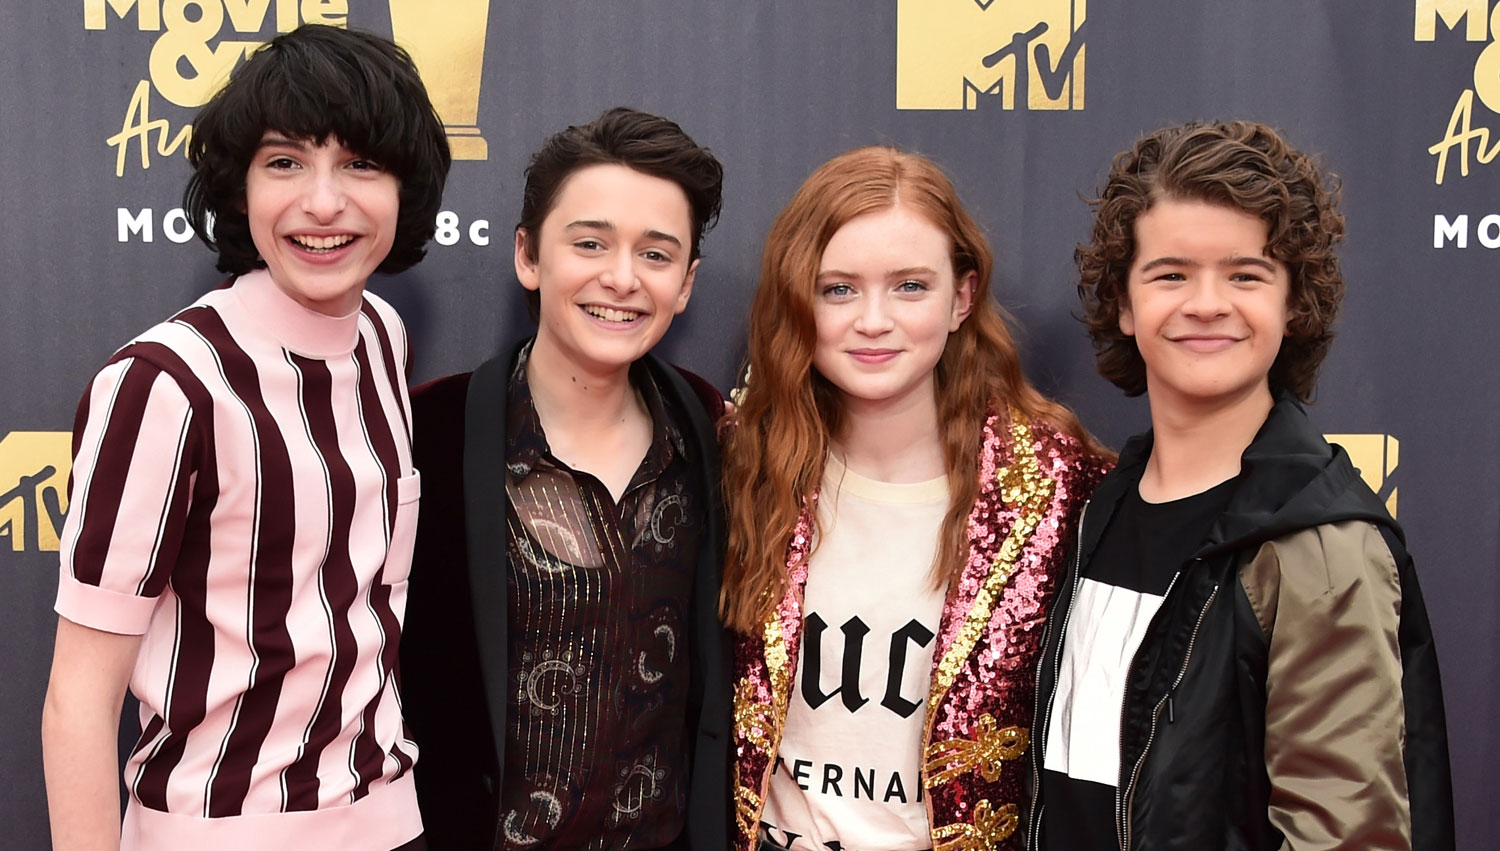 'Stranger Things' Kids Attend MTV Awards Sans Millie Bobby Brown - 2018 MTV Movie & TV Awards, Dacre ...